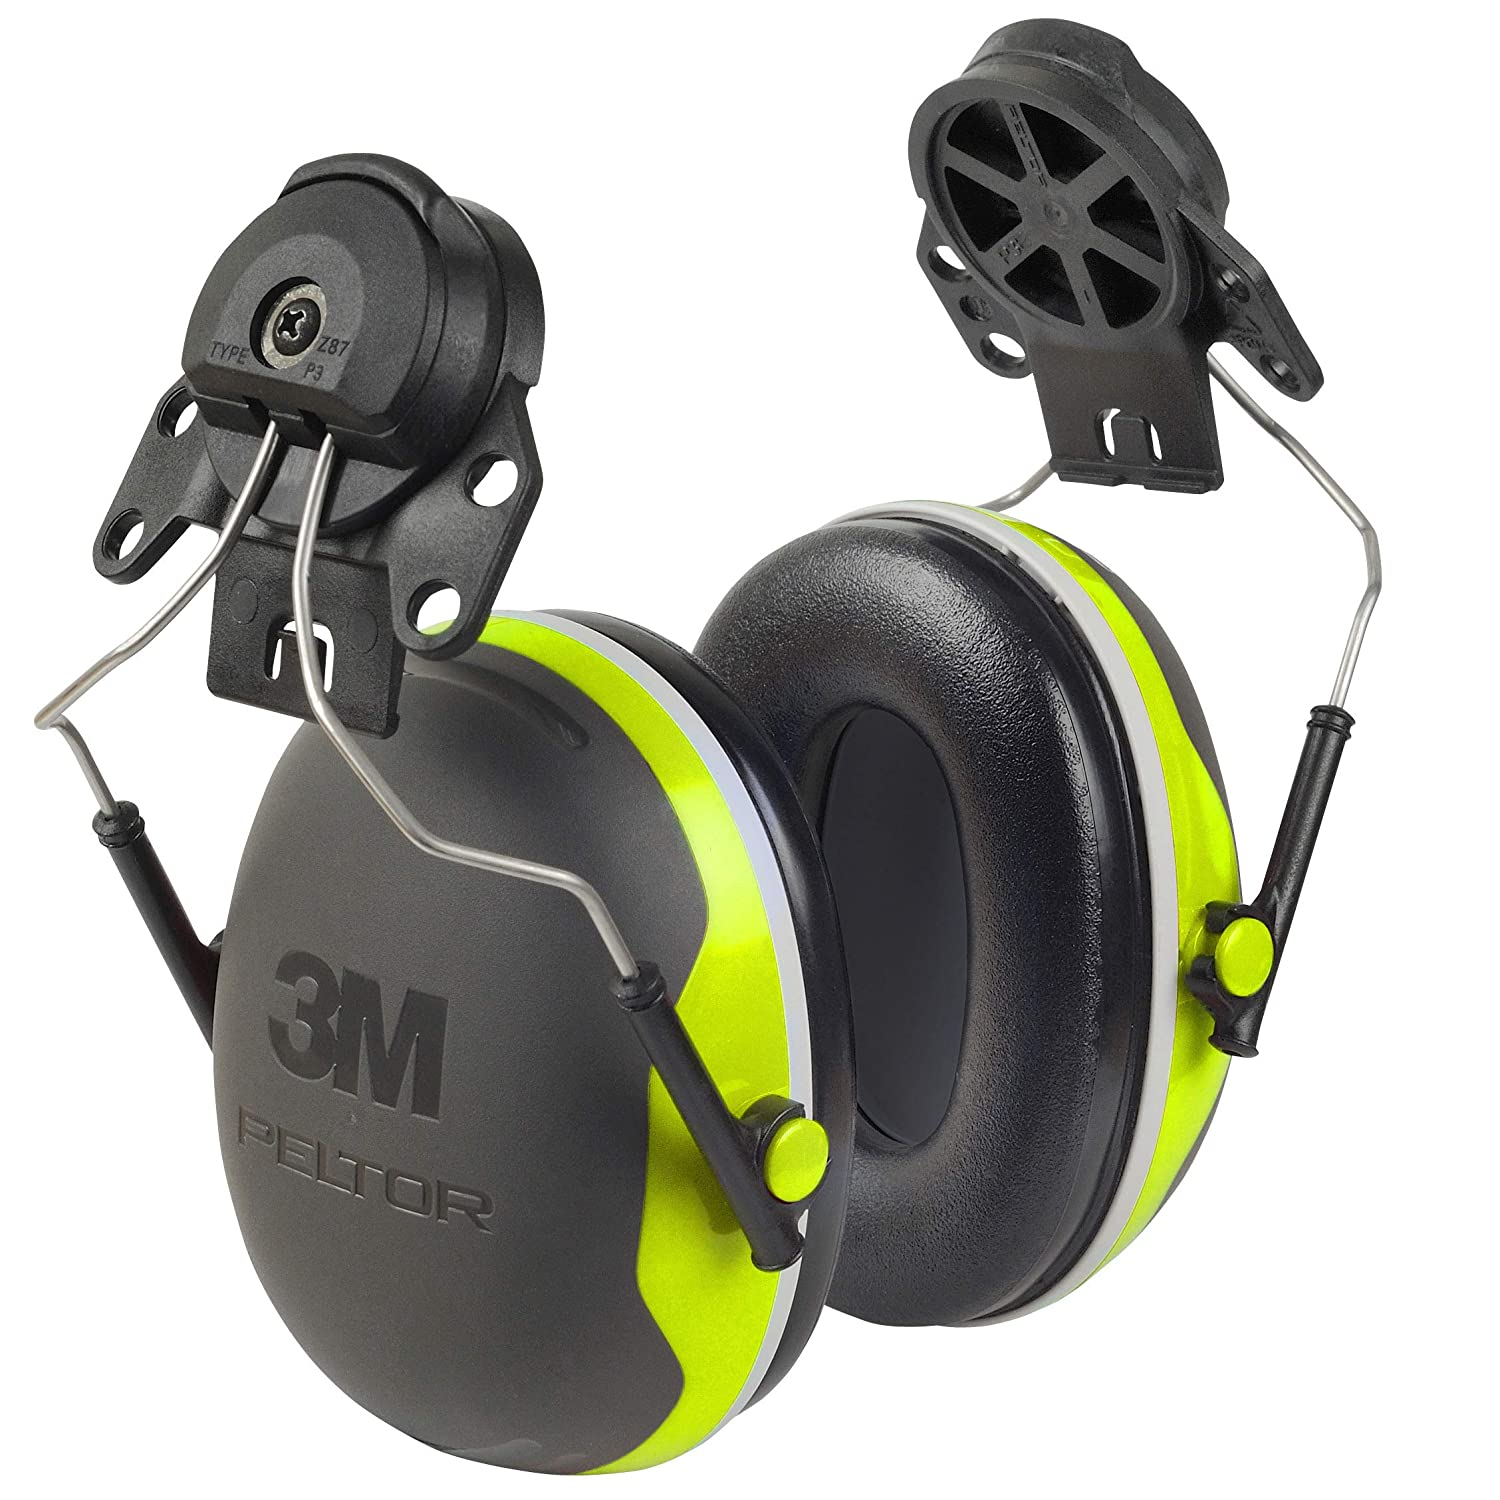 3M Peltor Ear Muffs, Noise Protection, Hard Hat Attachment, NRR 25 dB, Construction, Manufacturing, Maintenance, Automotive, Woodworking, Heavy Engineering, Mining, X4P3E